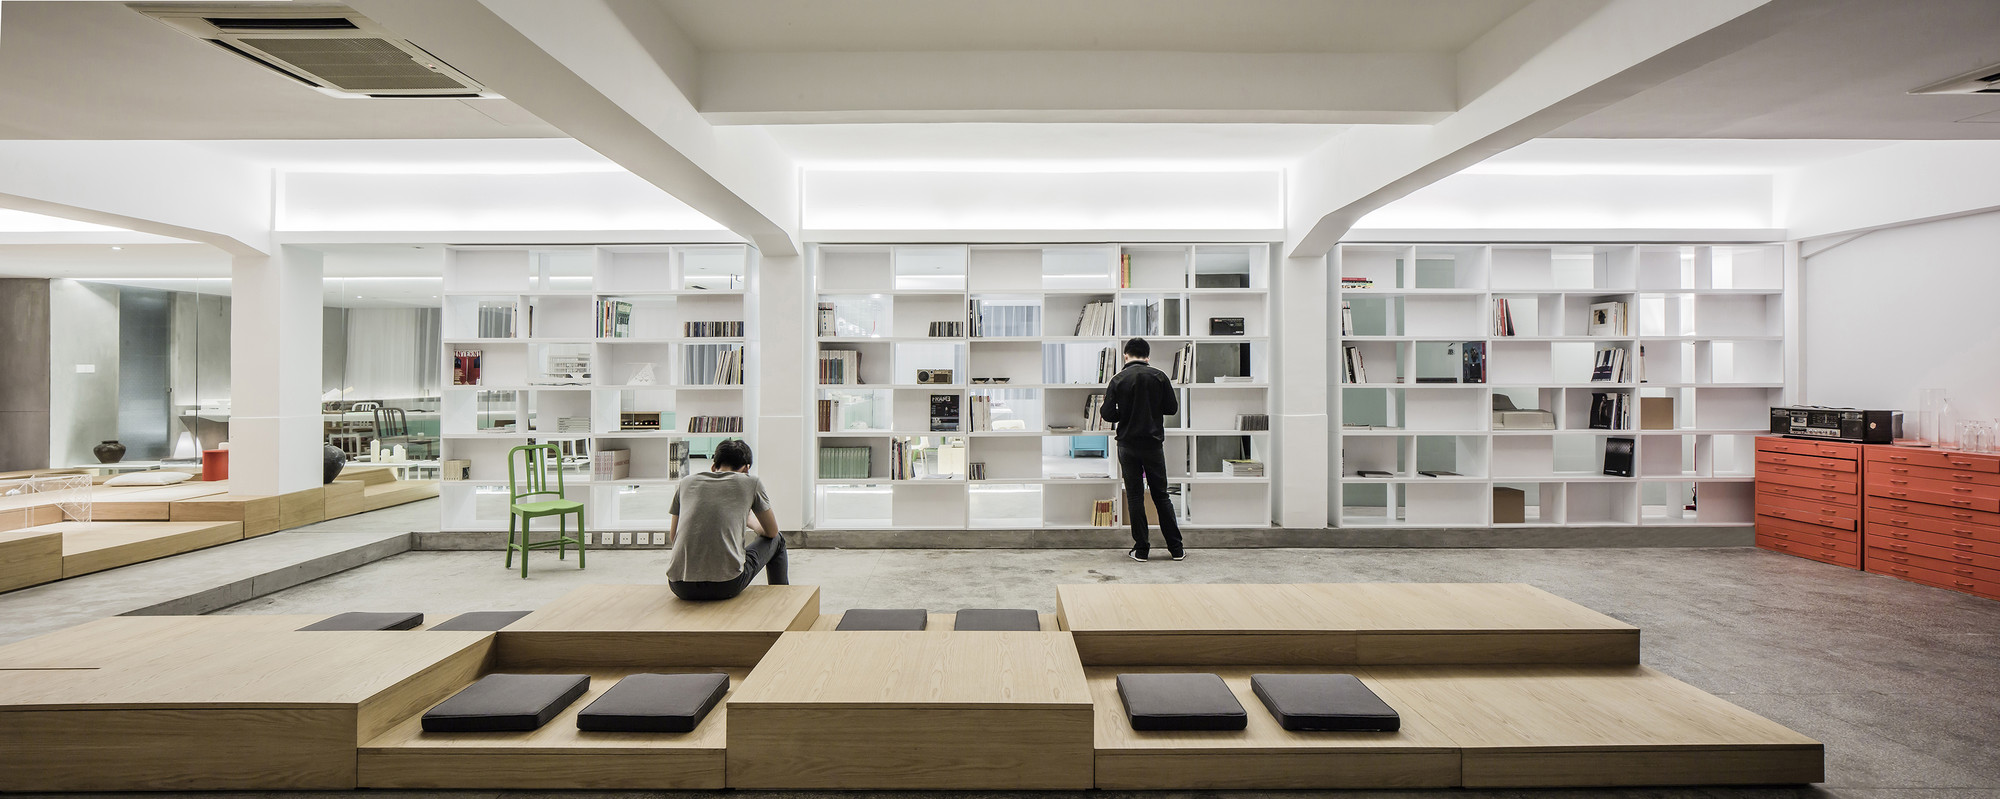 Architecture Studio Space 1305 studio office / 1305 studio | archdaily